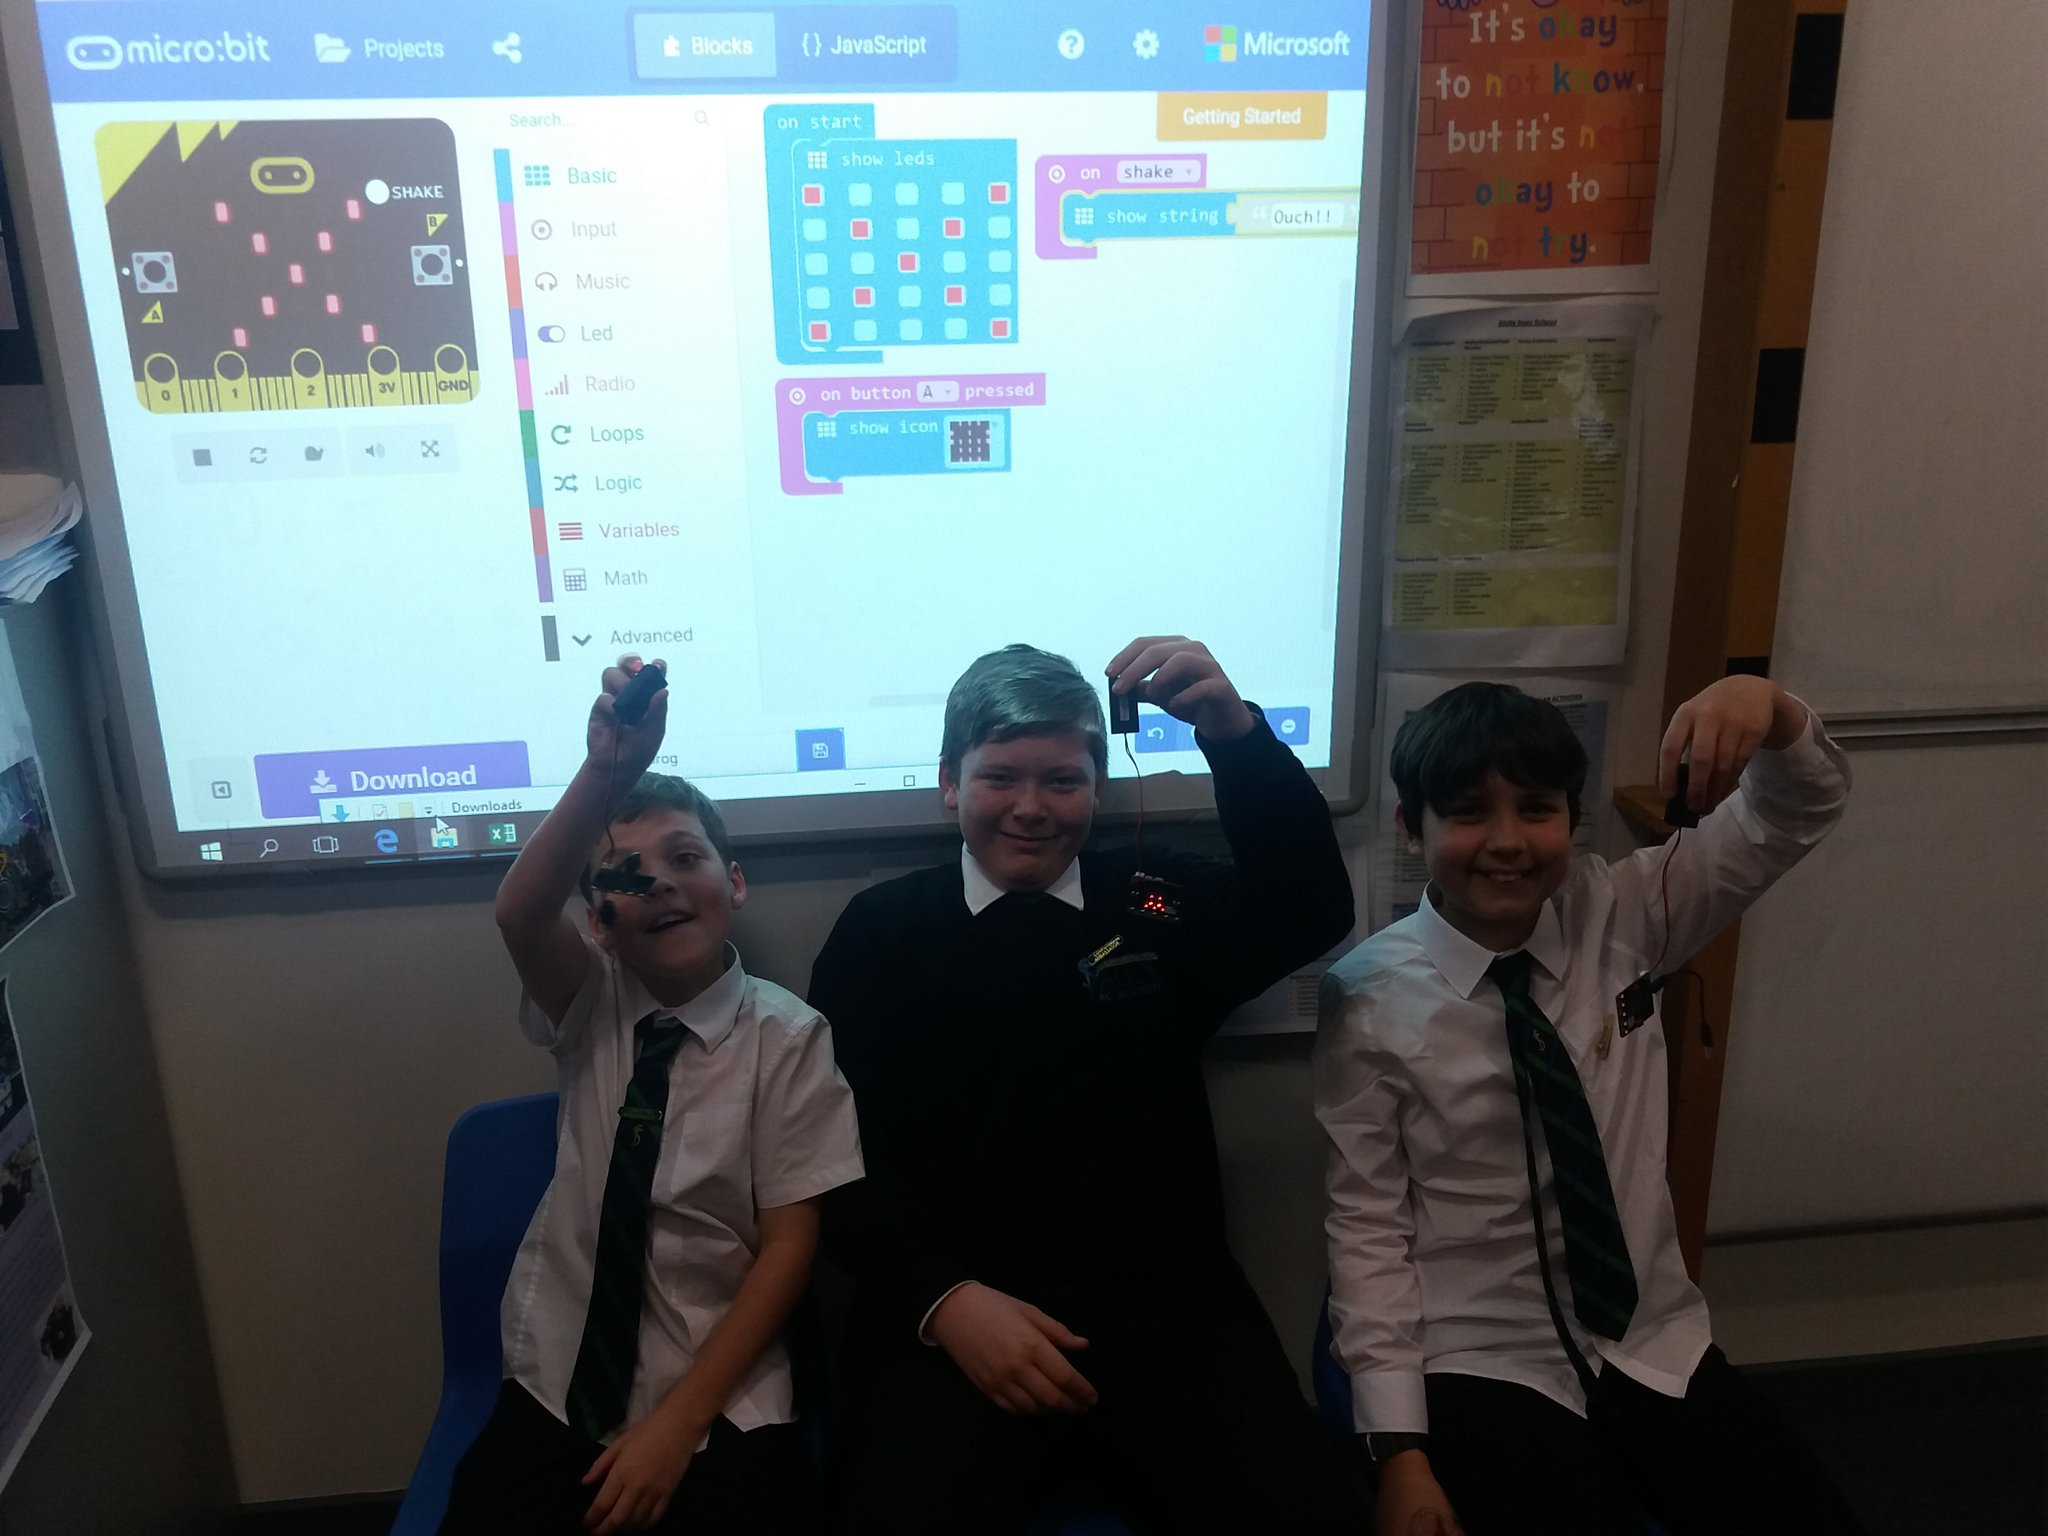 S1 Computing Science Ambassadors